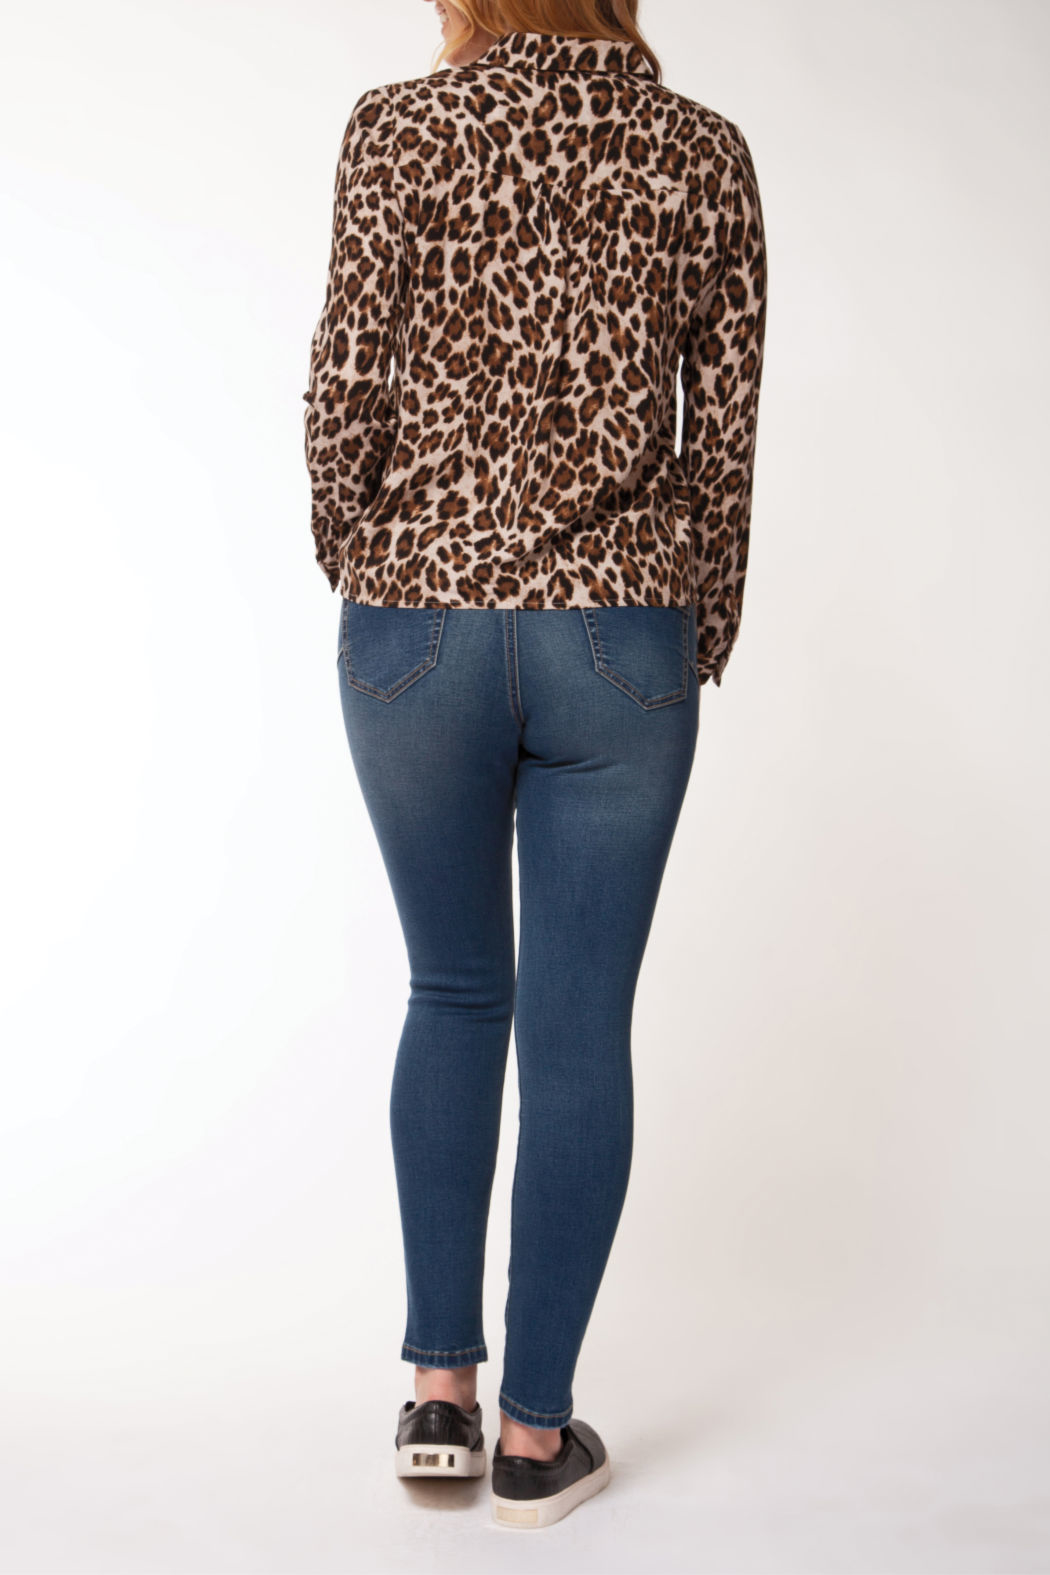 Dex Button down Cheetah Blouse w Tie Bottom - Front Full Image